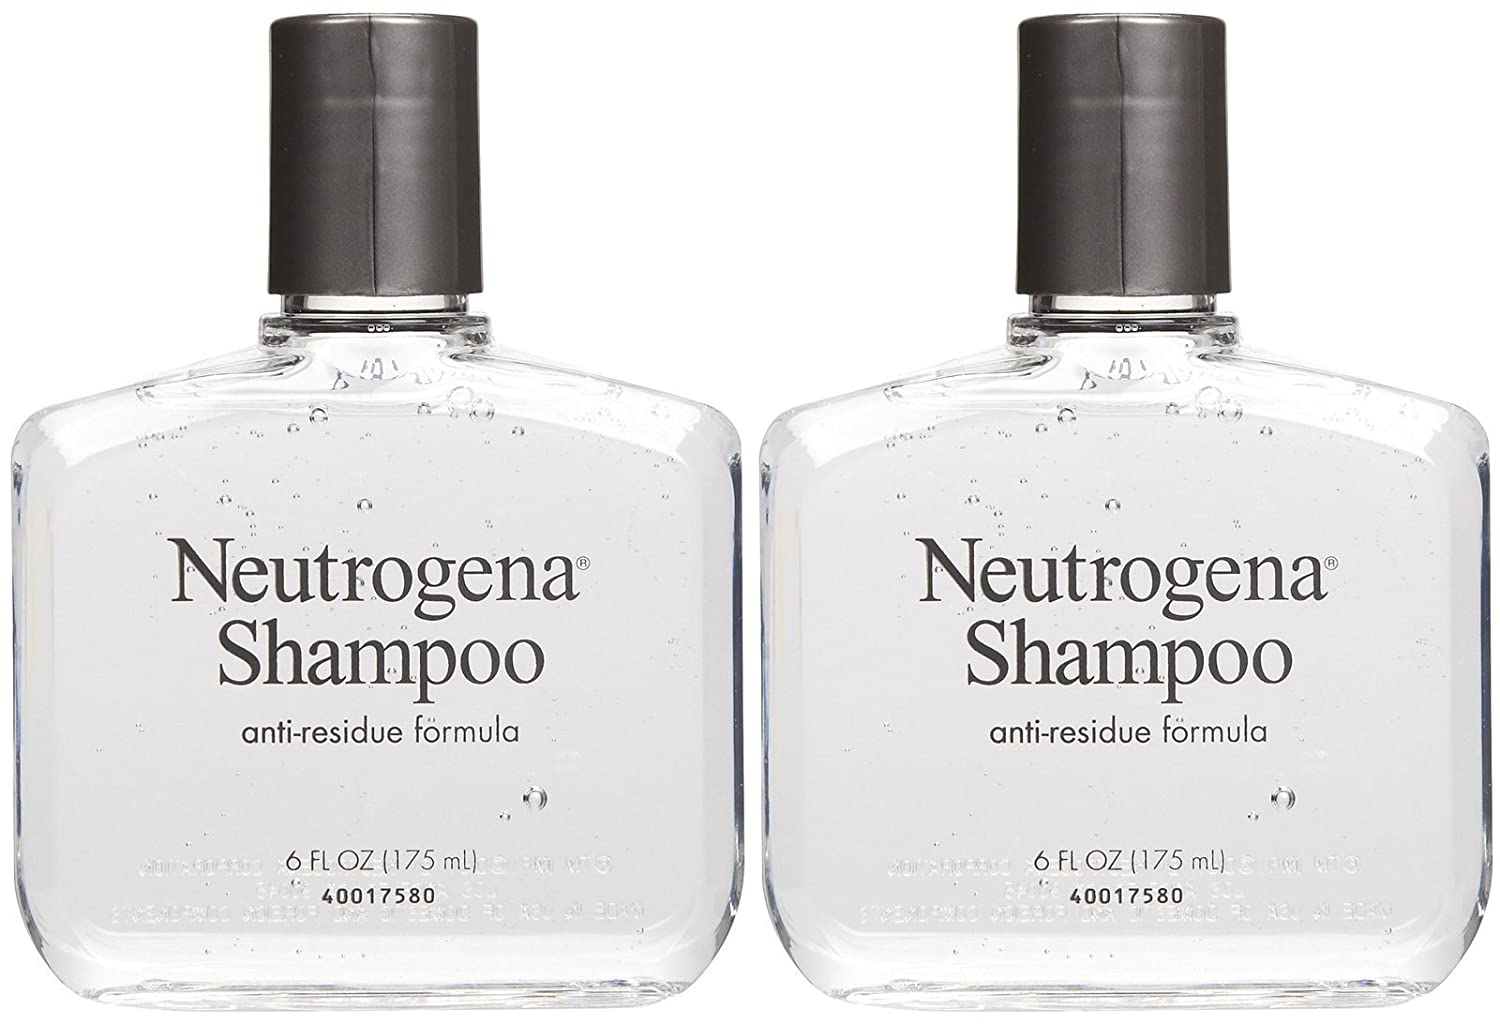 Amazon.com : Neutrogena Anti-Residue Shampoo, Gentle Non-Irritating Clarifying  Shampoo to Remove Hair Build-Up & Residue, 6 fl. oz (Pack of 2) : Beauty